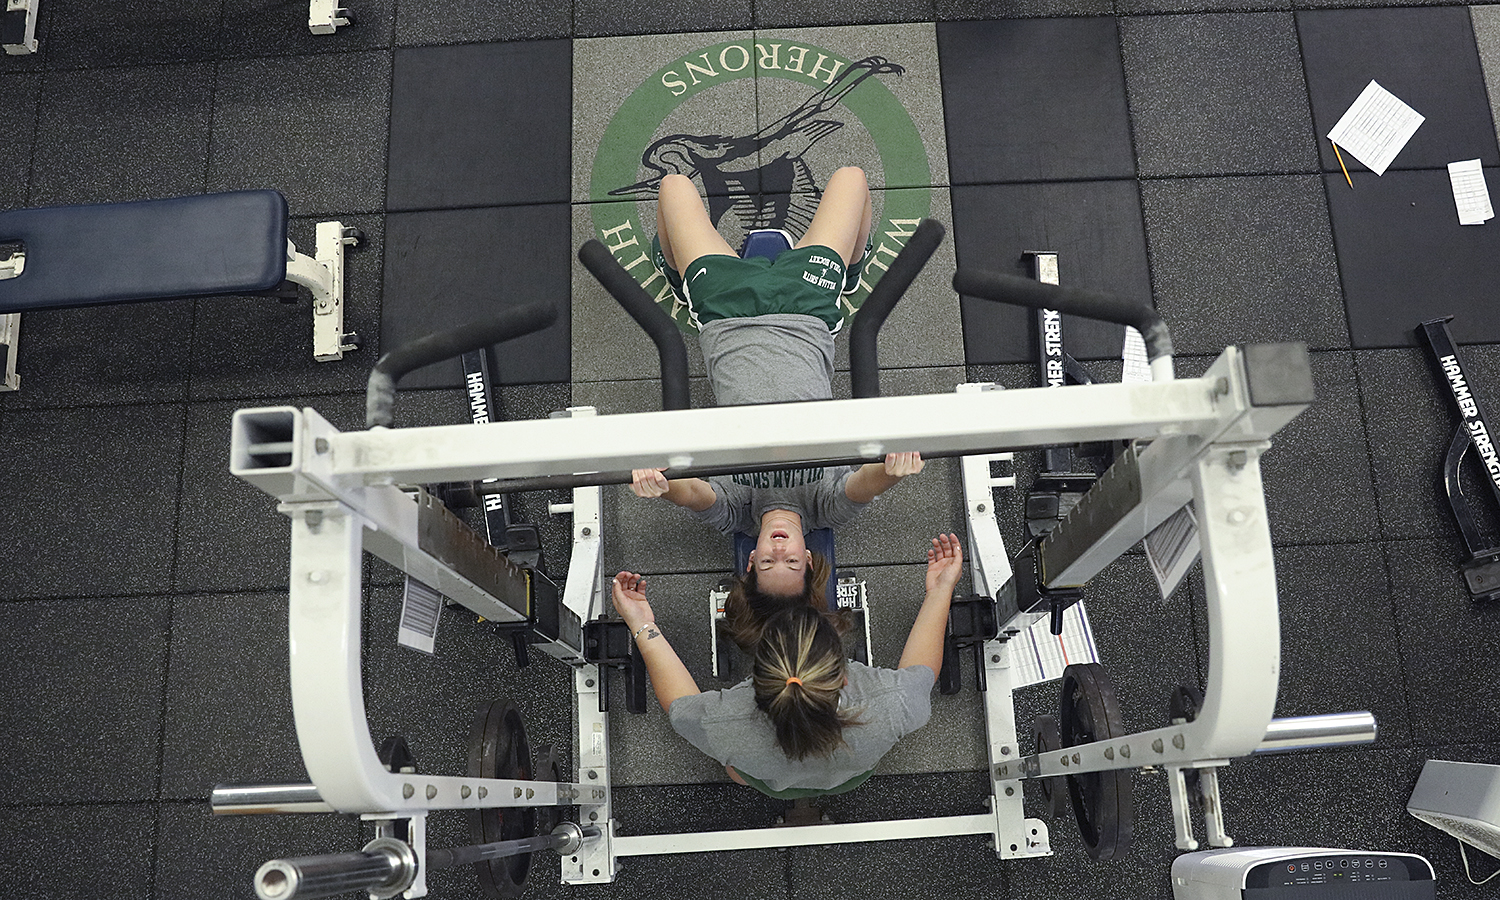 Alexandra Frary 'X spots Kelsey Pierce 'X during weightlifting training in the Raleigh-Foley-Kraus Varsity Strength Training Center in Bristol Gym.